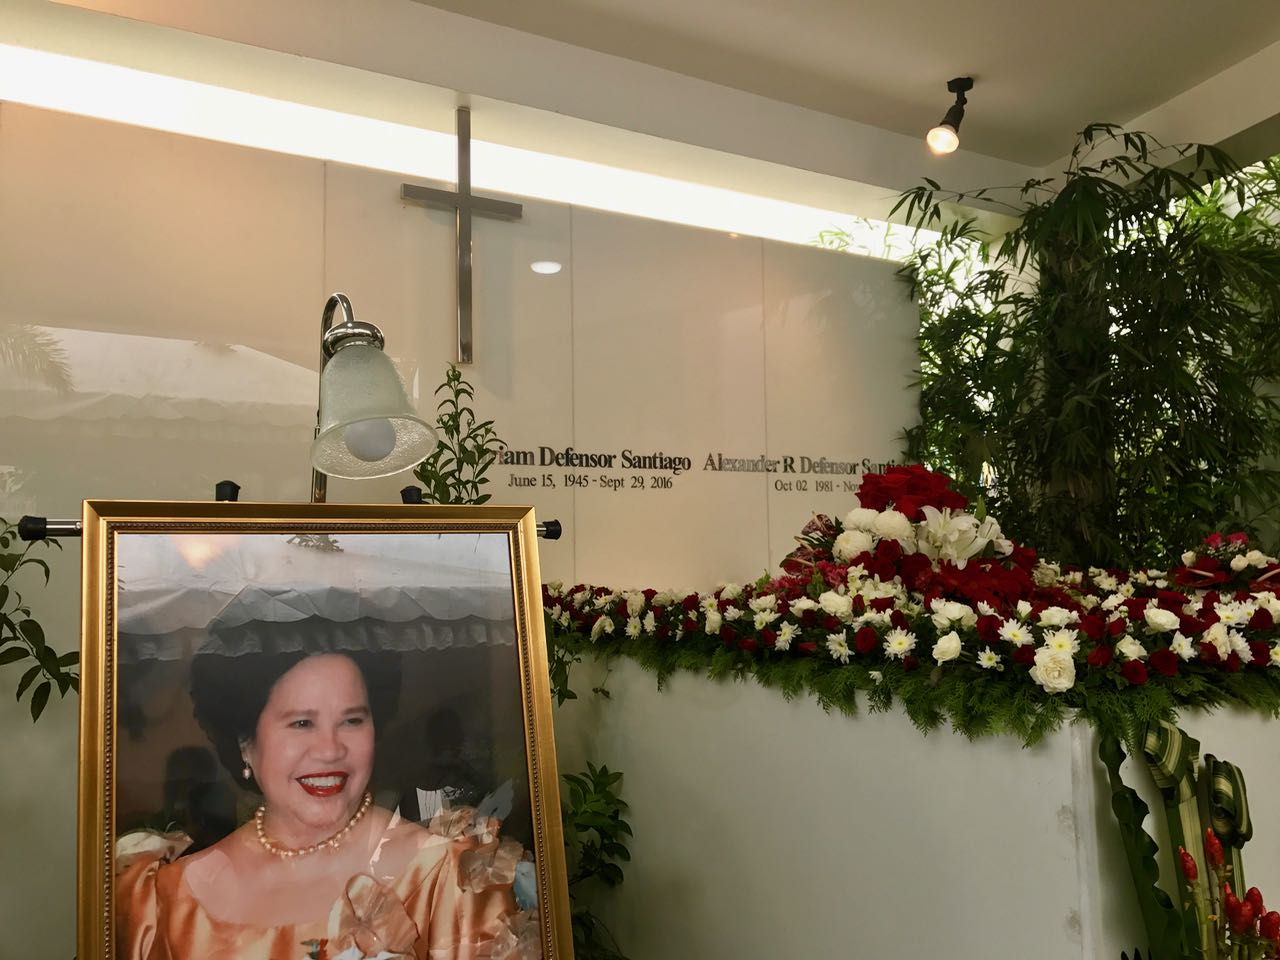 IN MEMORY. The family of the late senator Miriam Santiago holds a simple ceremony to remember her on her first death anniversary. Photo by Patty Pasion/Rappler